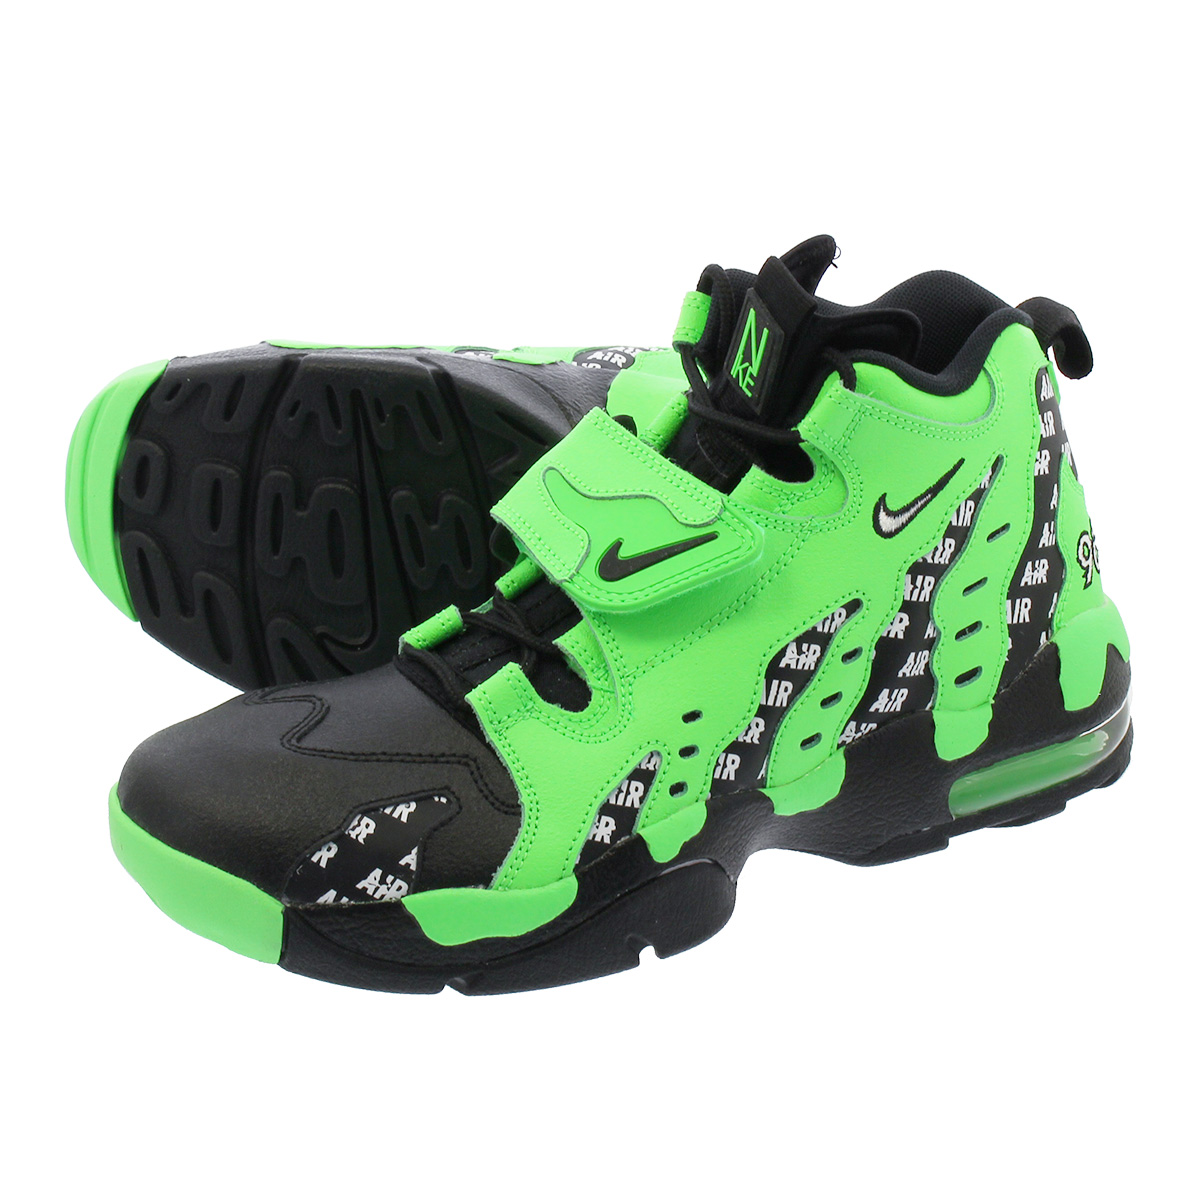 16cece0a2457 NIKE AIR DT MAX 96 SOA Nike air DT max 96 RAGE GREEN BLACK WHITE aq5100-300